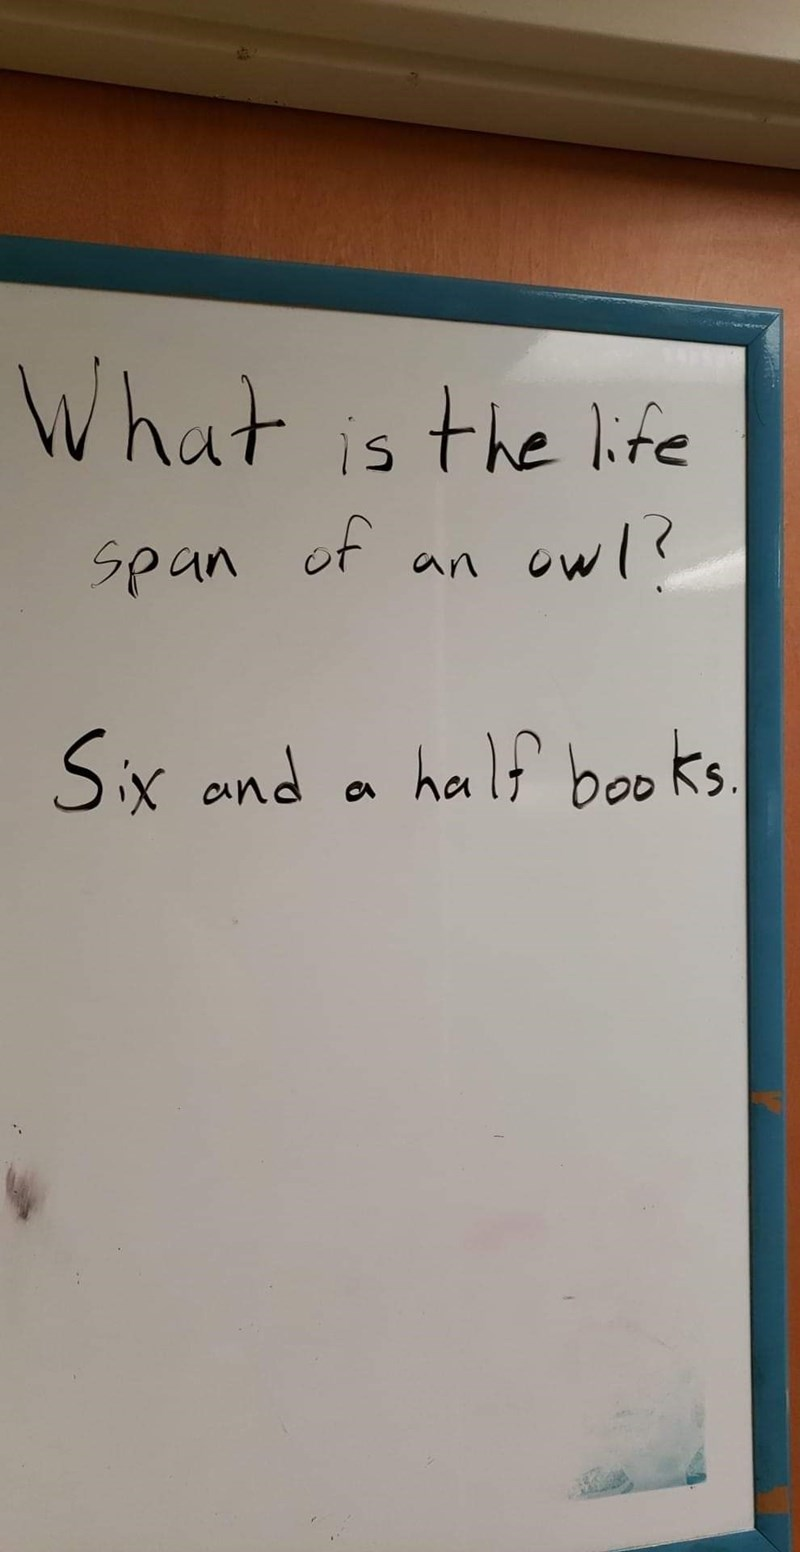 Text - What is the lfe owl? Span of an half boo ks Six and